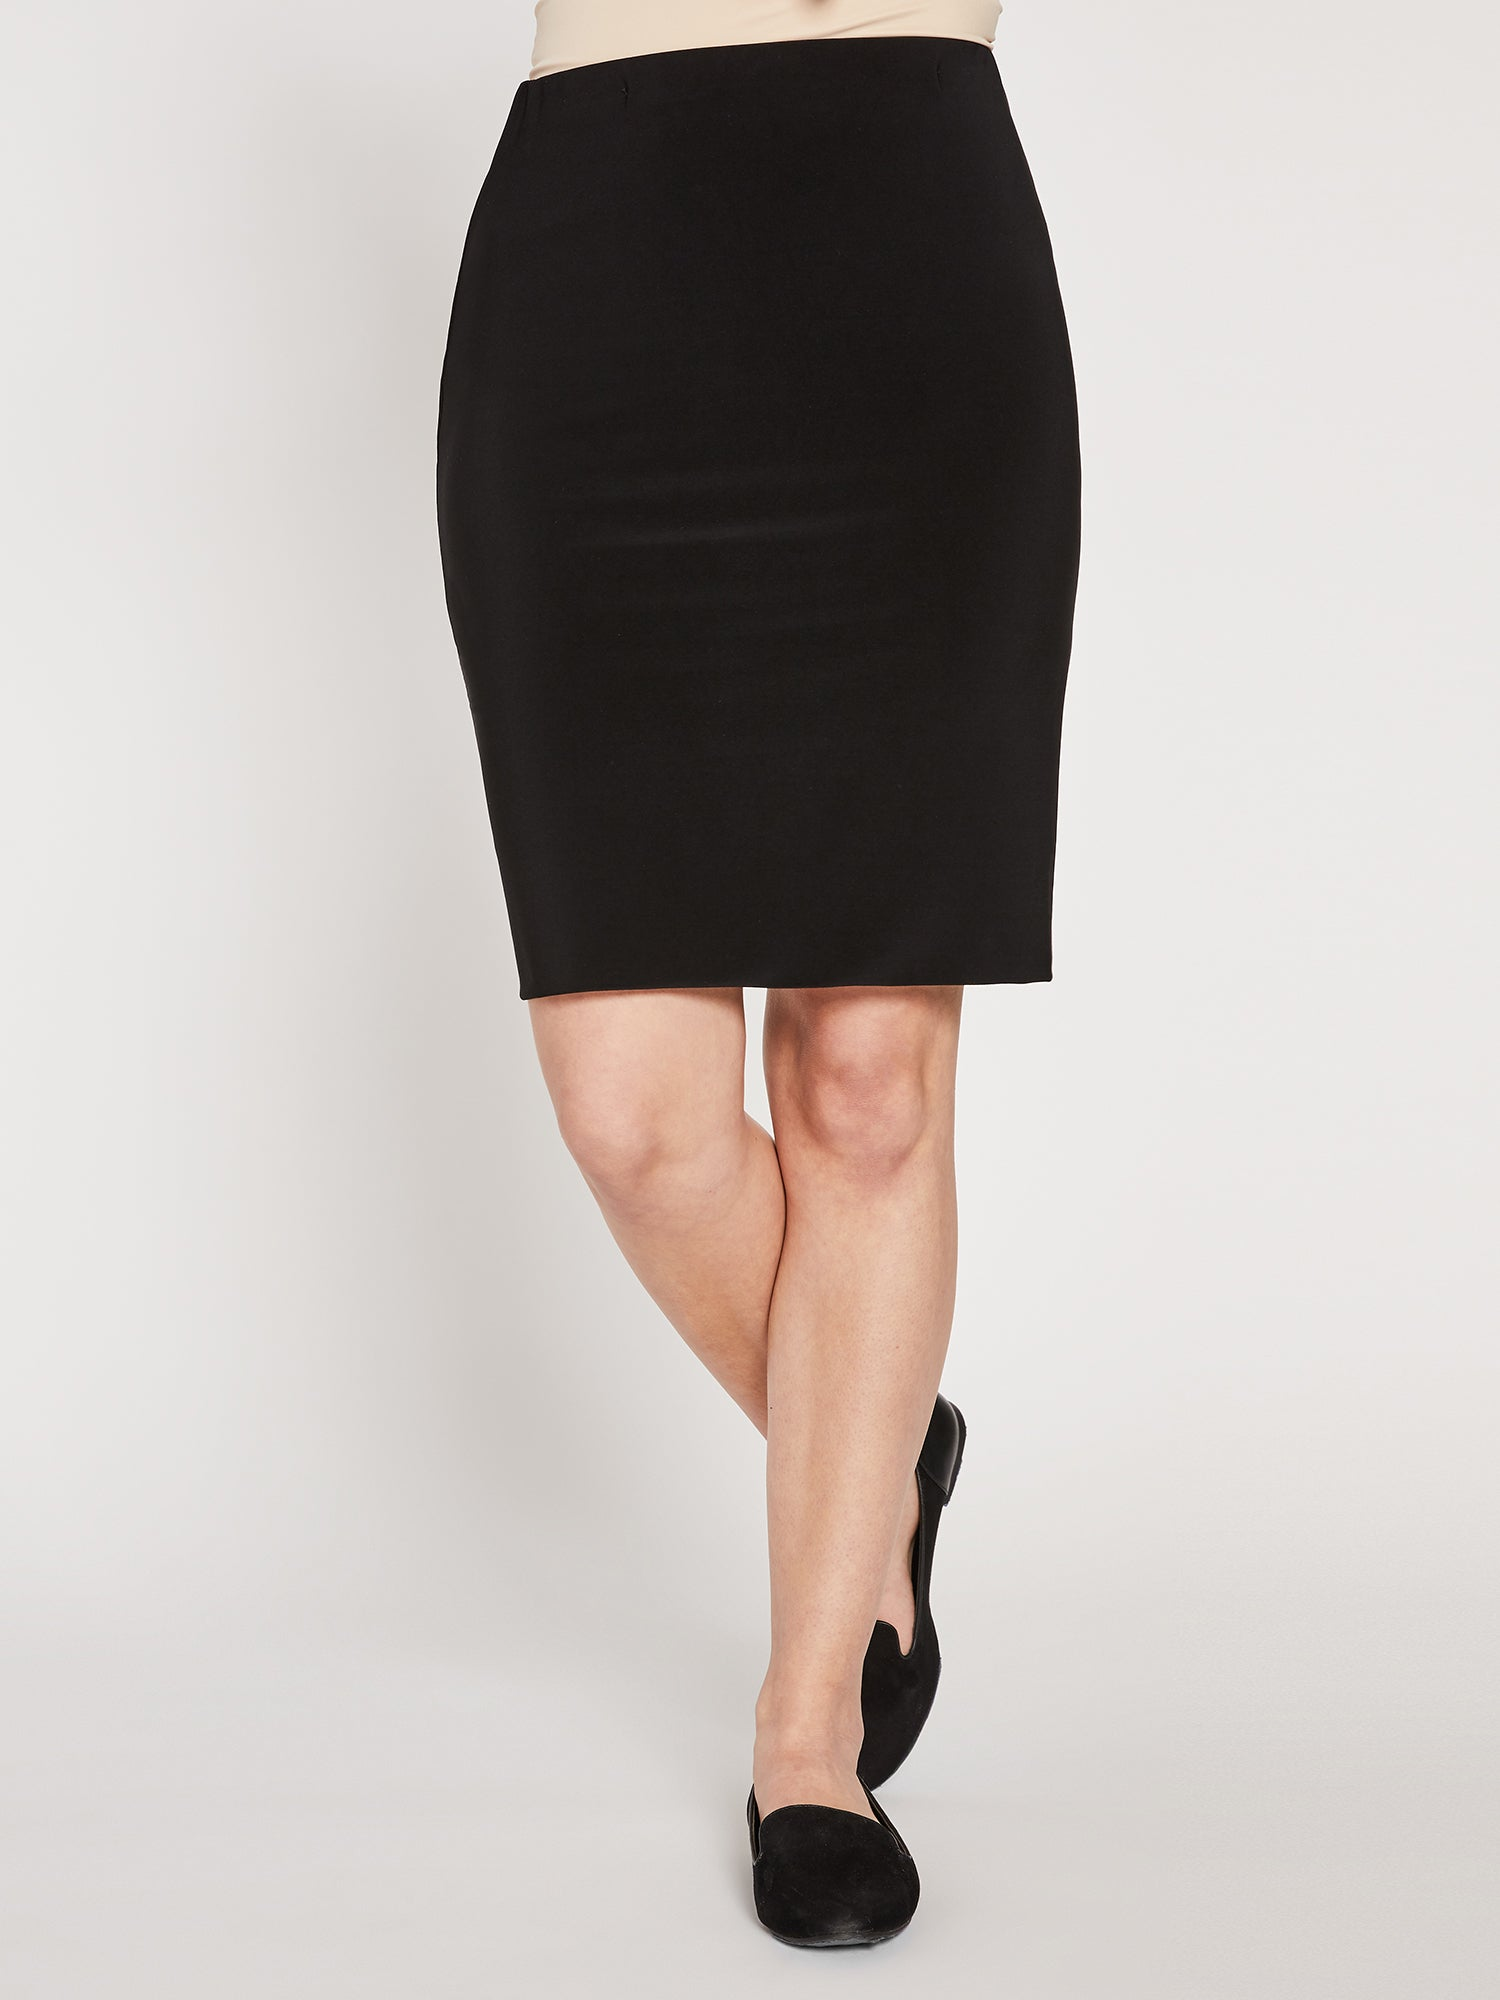 Sympli Tube Skirt Short - Black - Statement Boutique